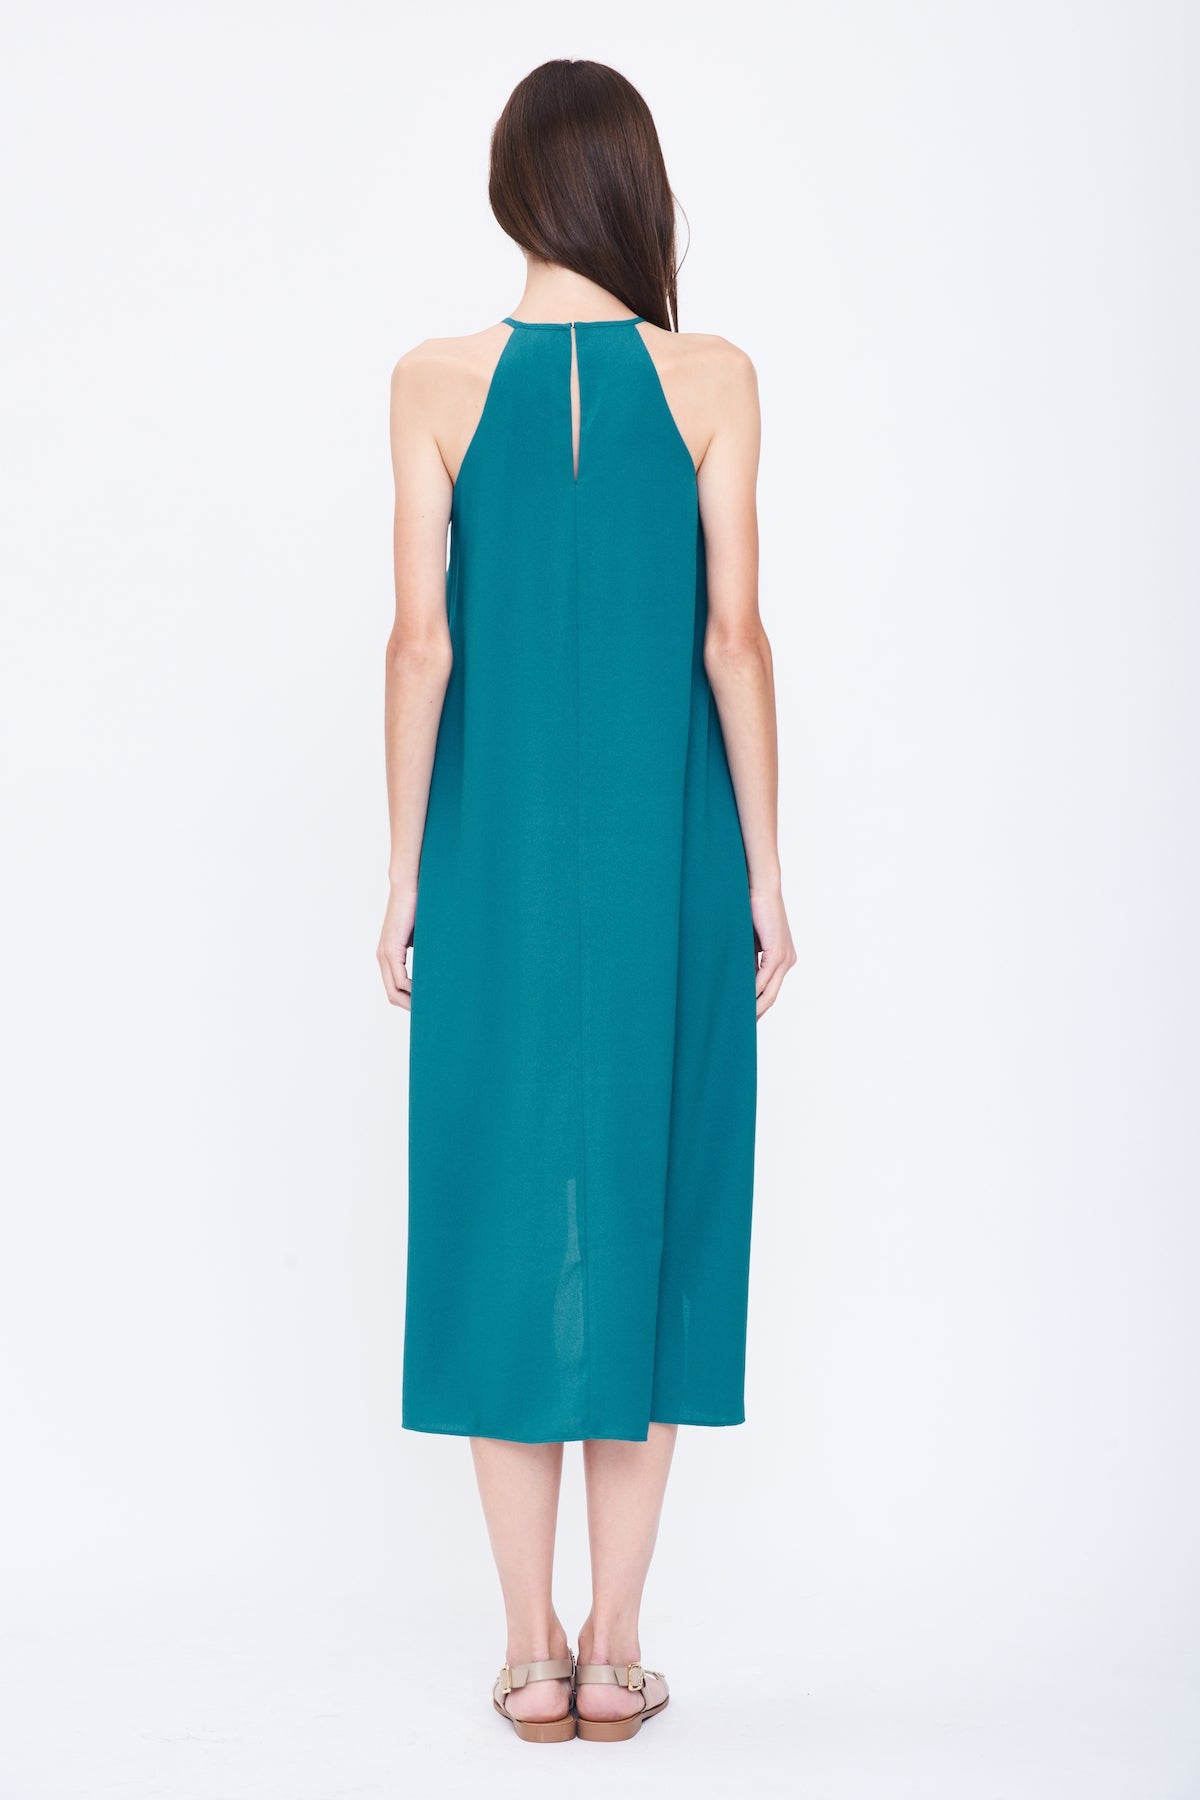 Pleated Halter Dress in Light Teal